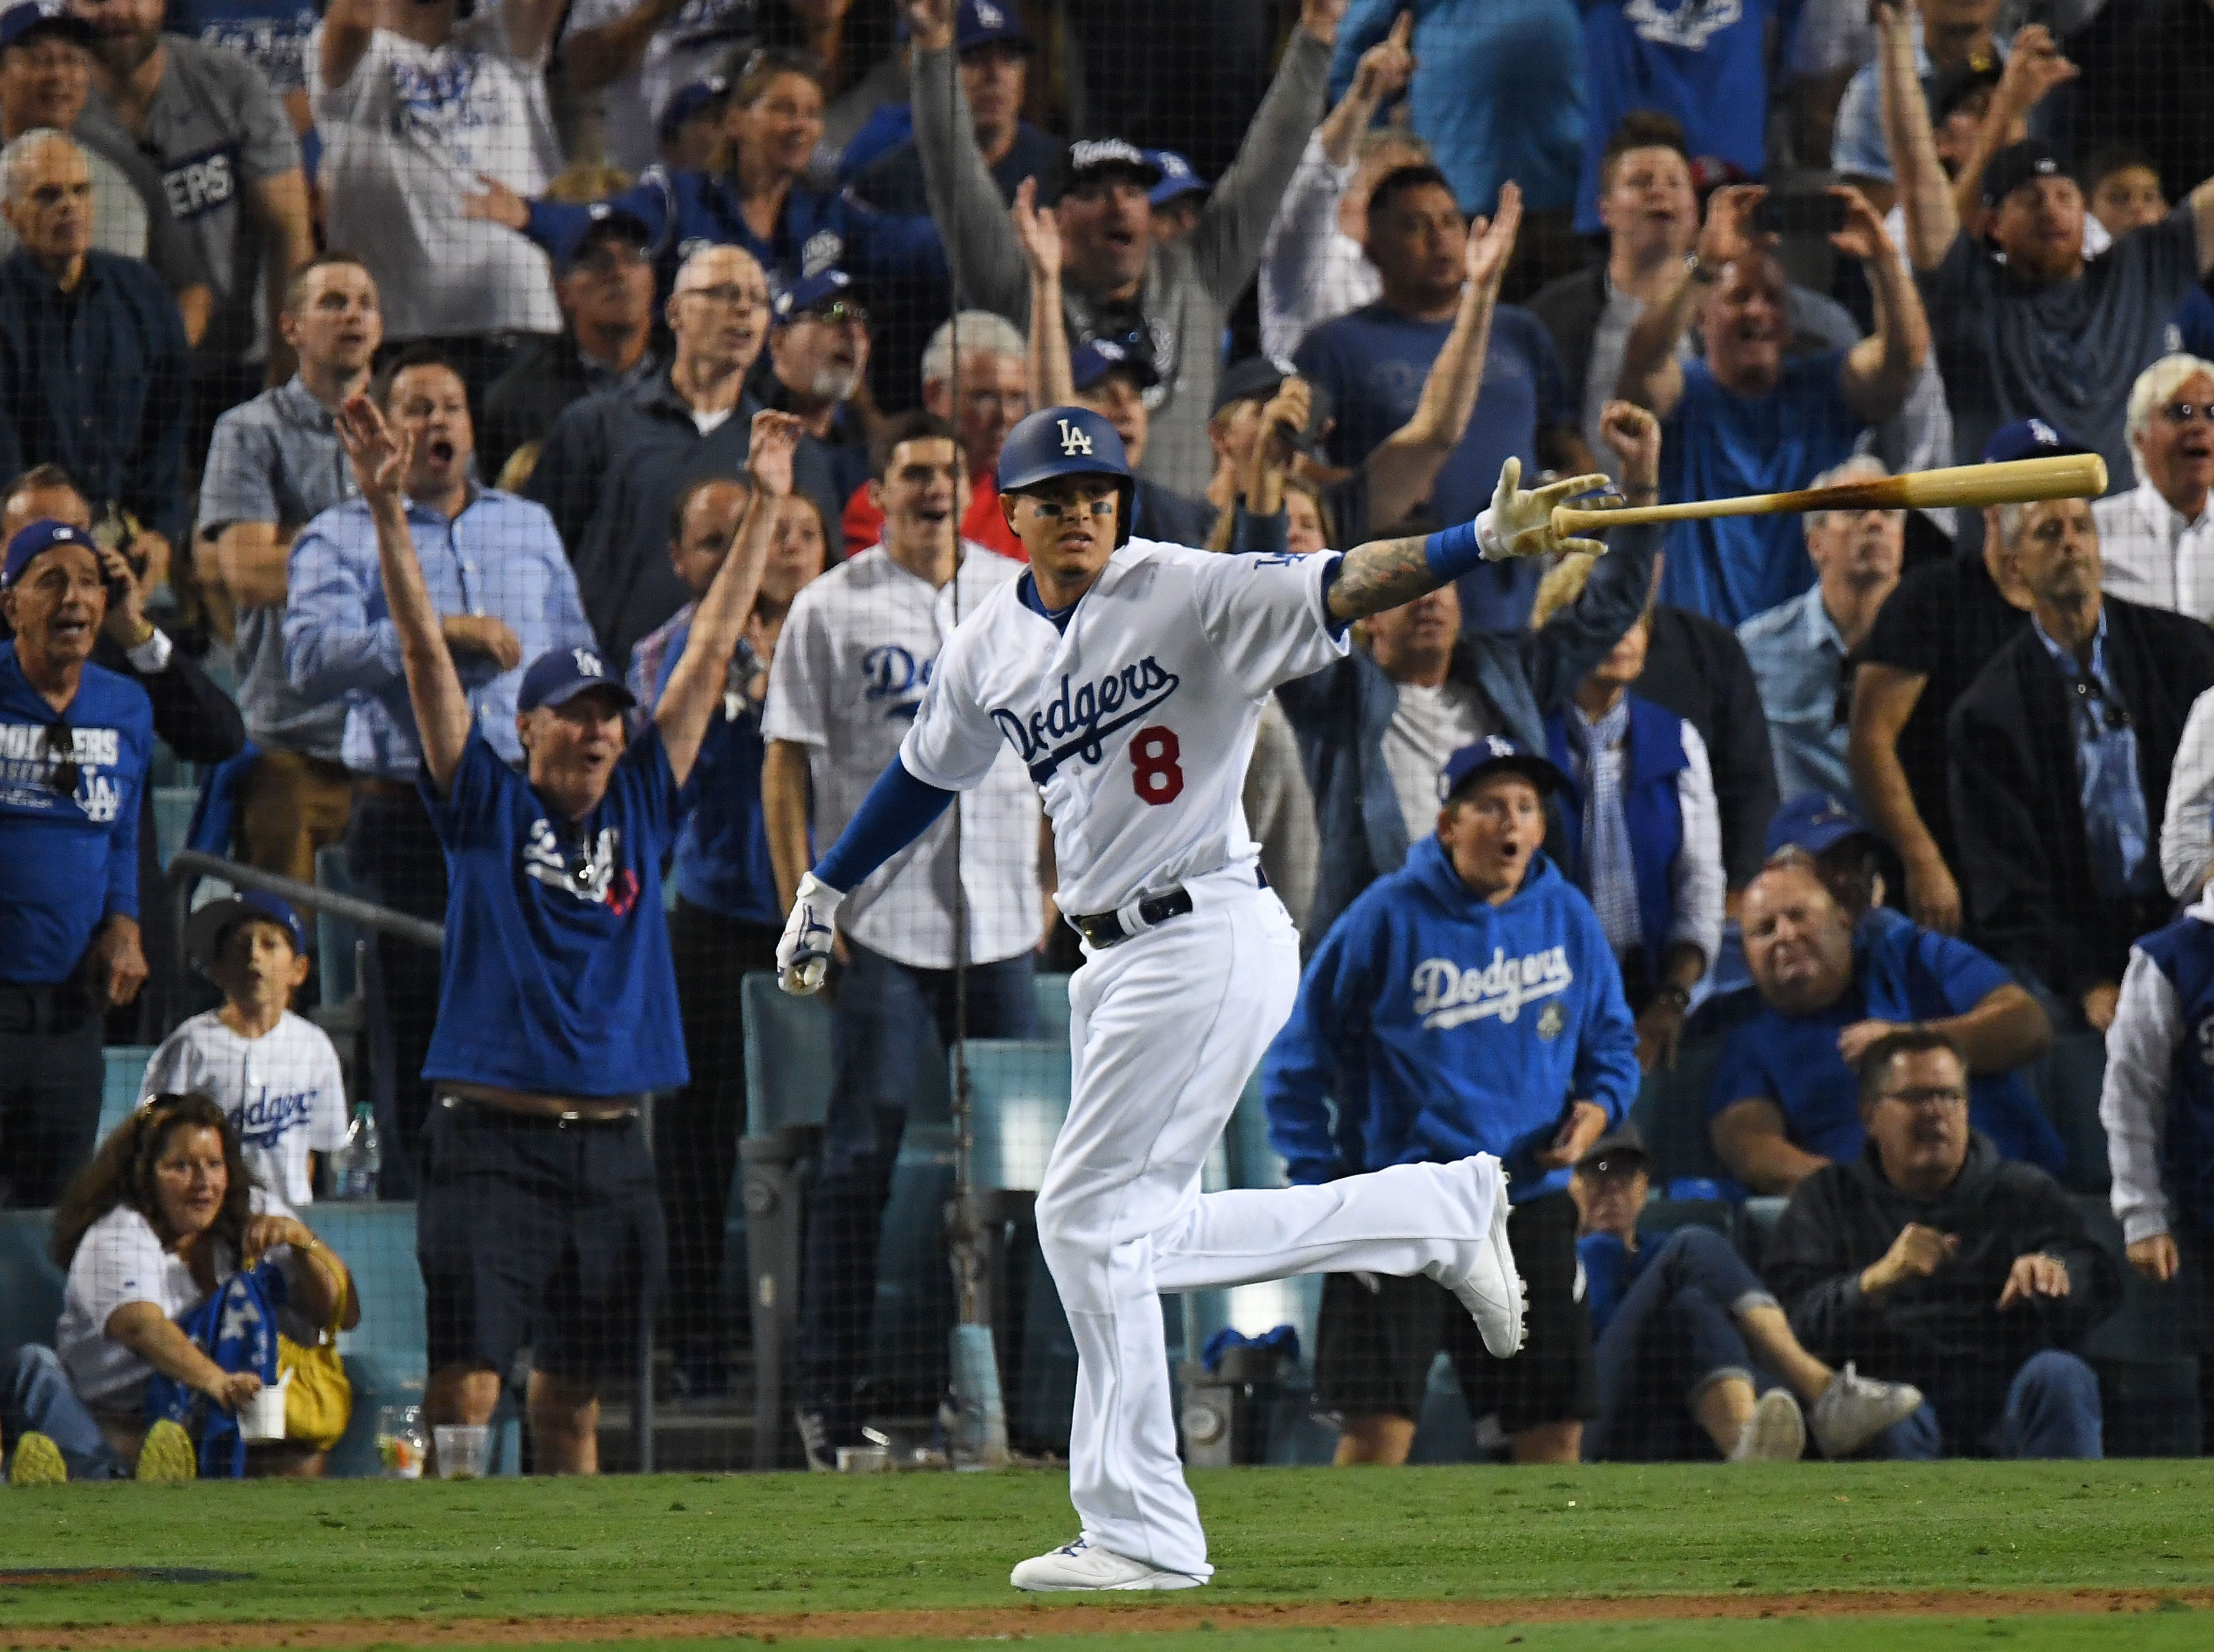 Game 3 at Dodger Stadium: Manny Machado singles in the sixth inning.